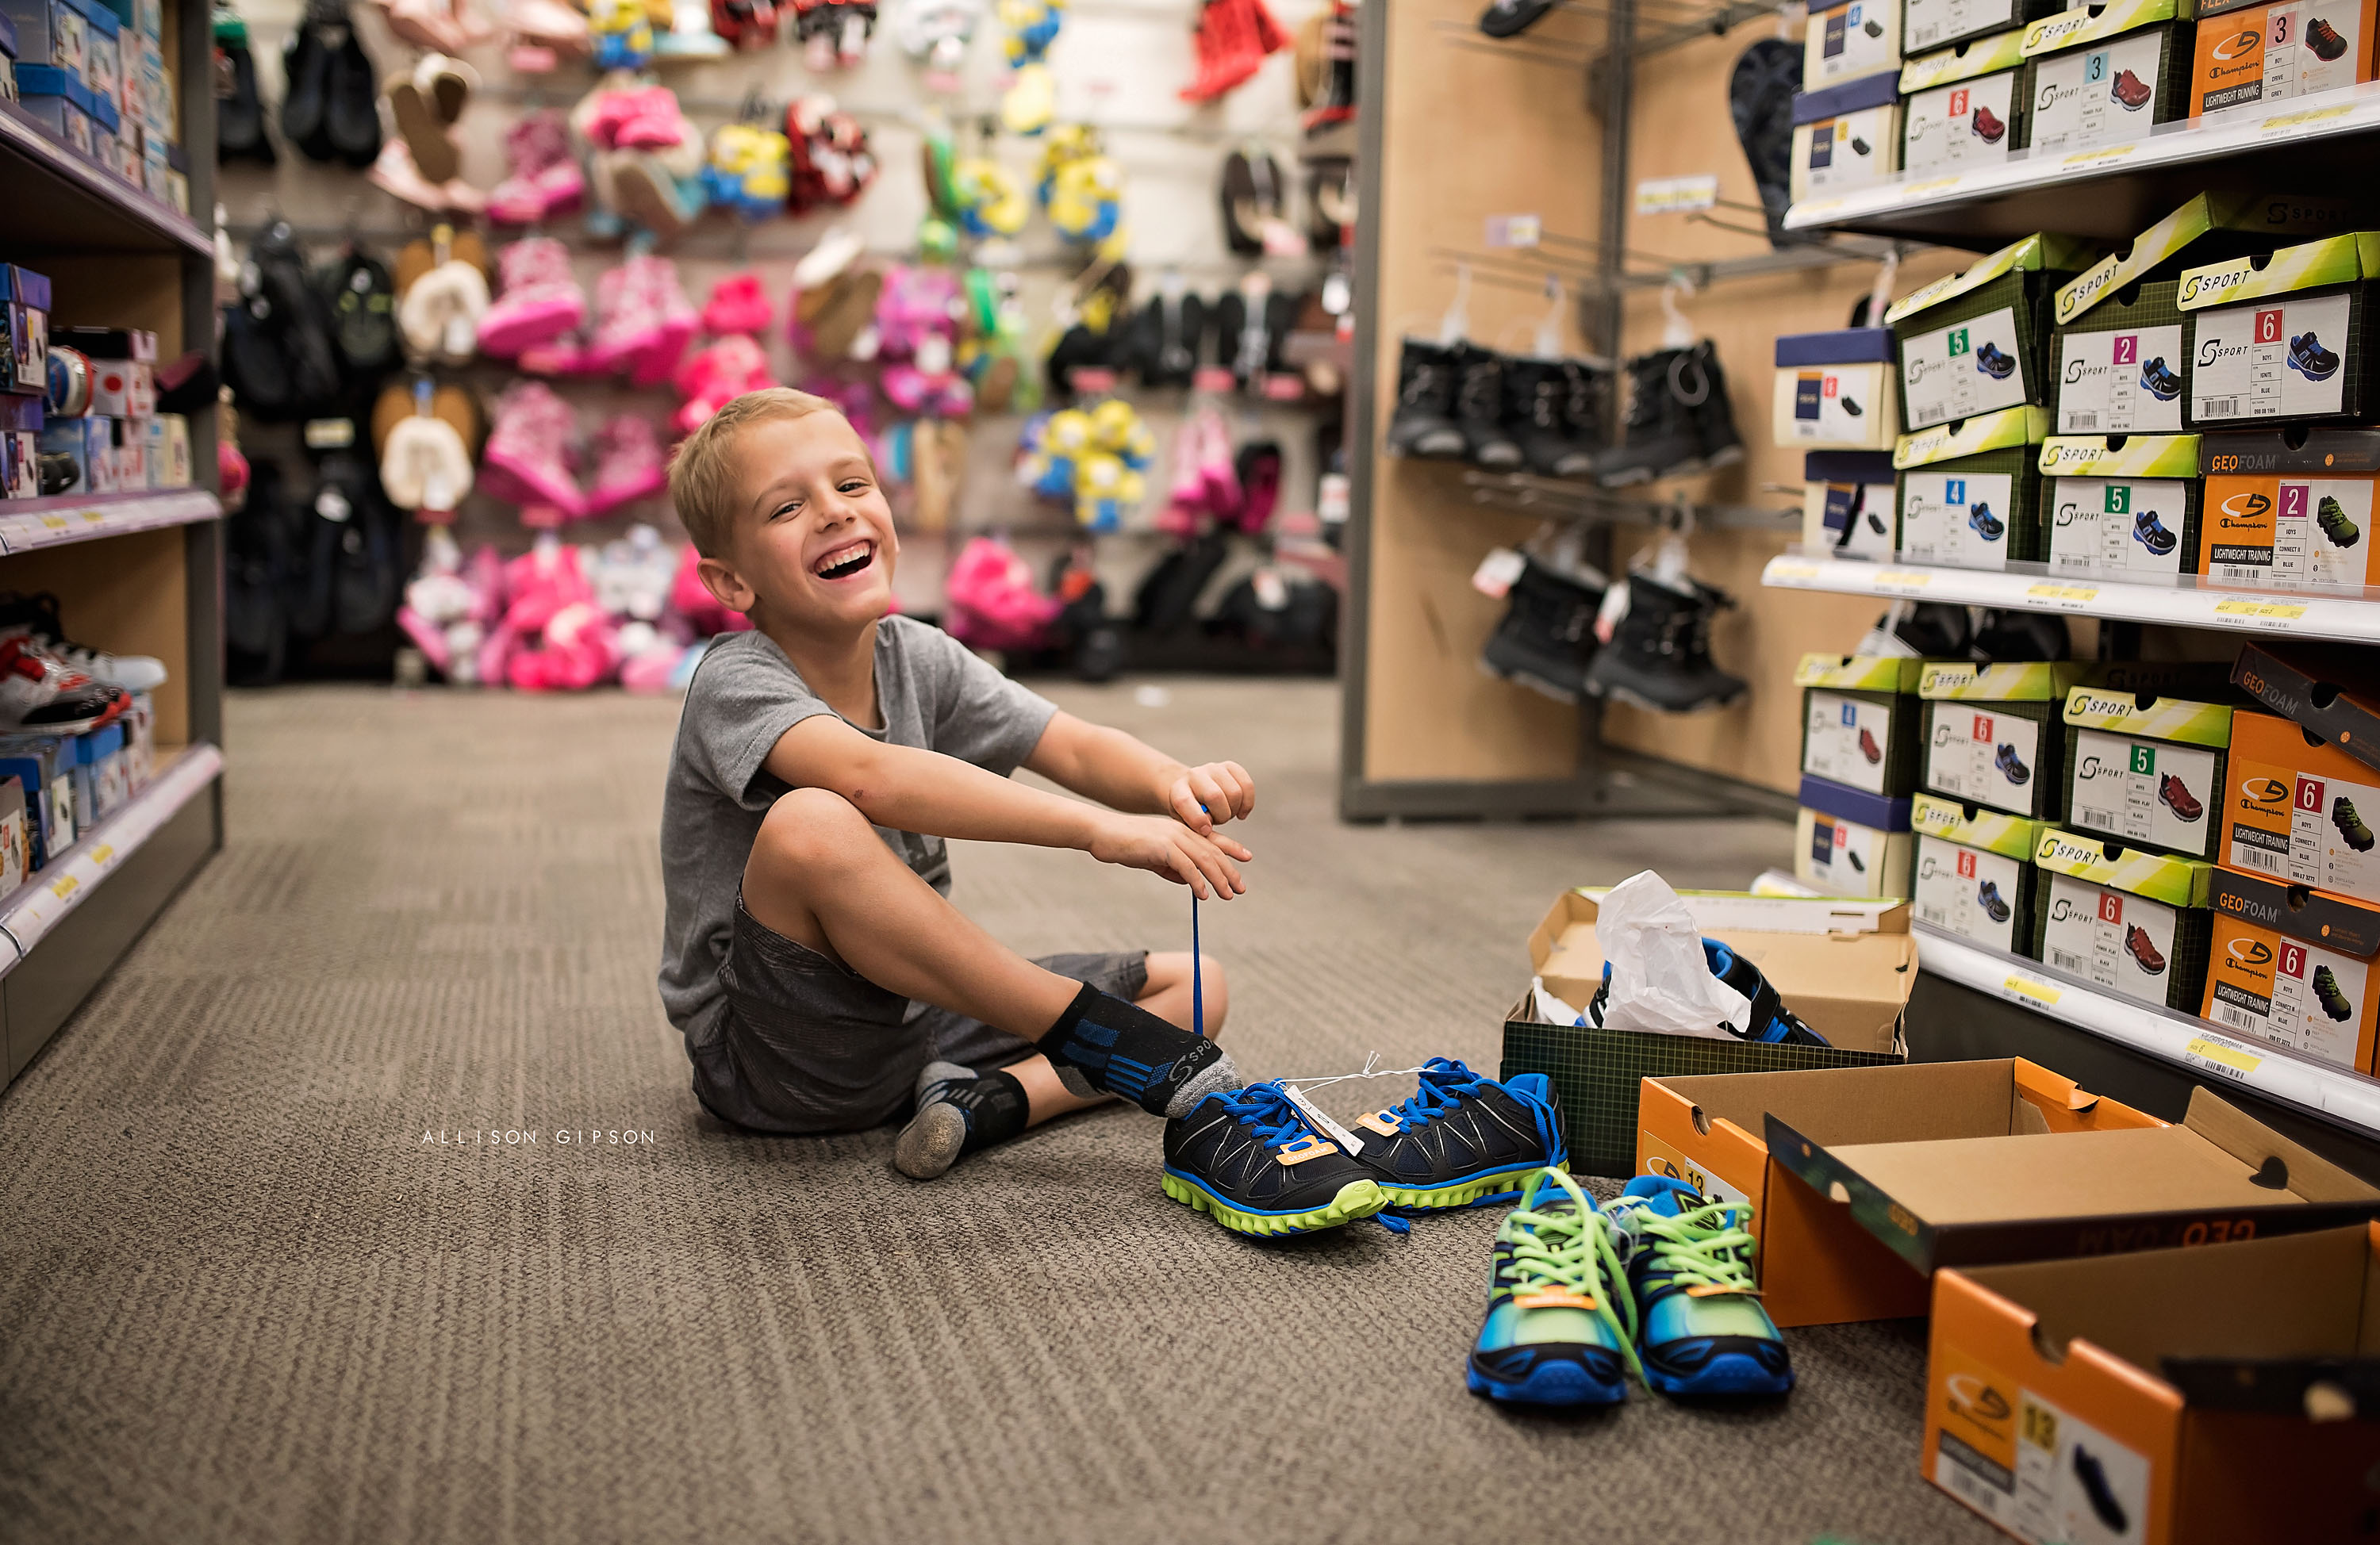 Time for New Shoes - By Allison Gipson